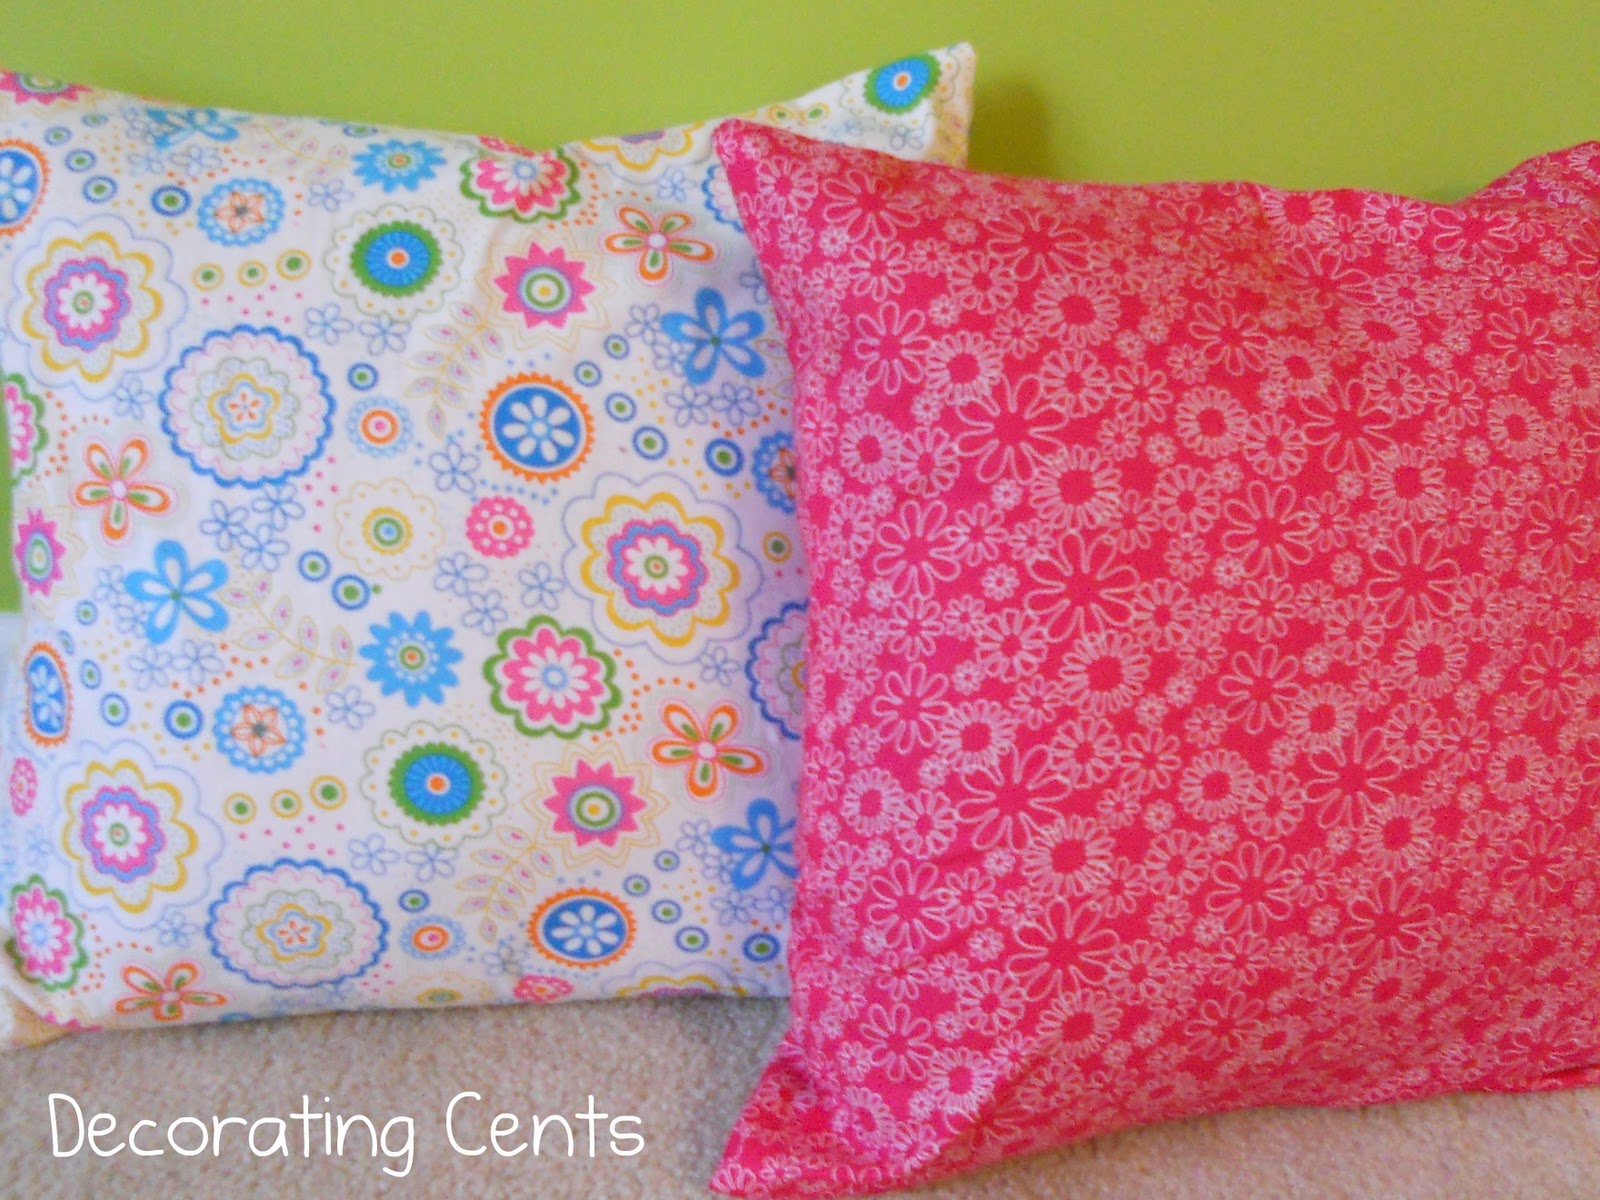 Decorating Cents: Sweet Girl's Room: No Sew Pillows